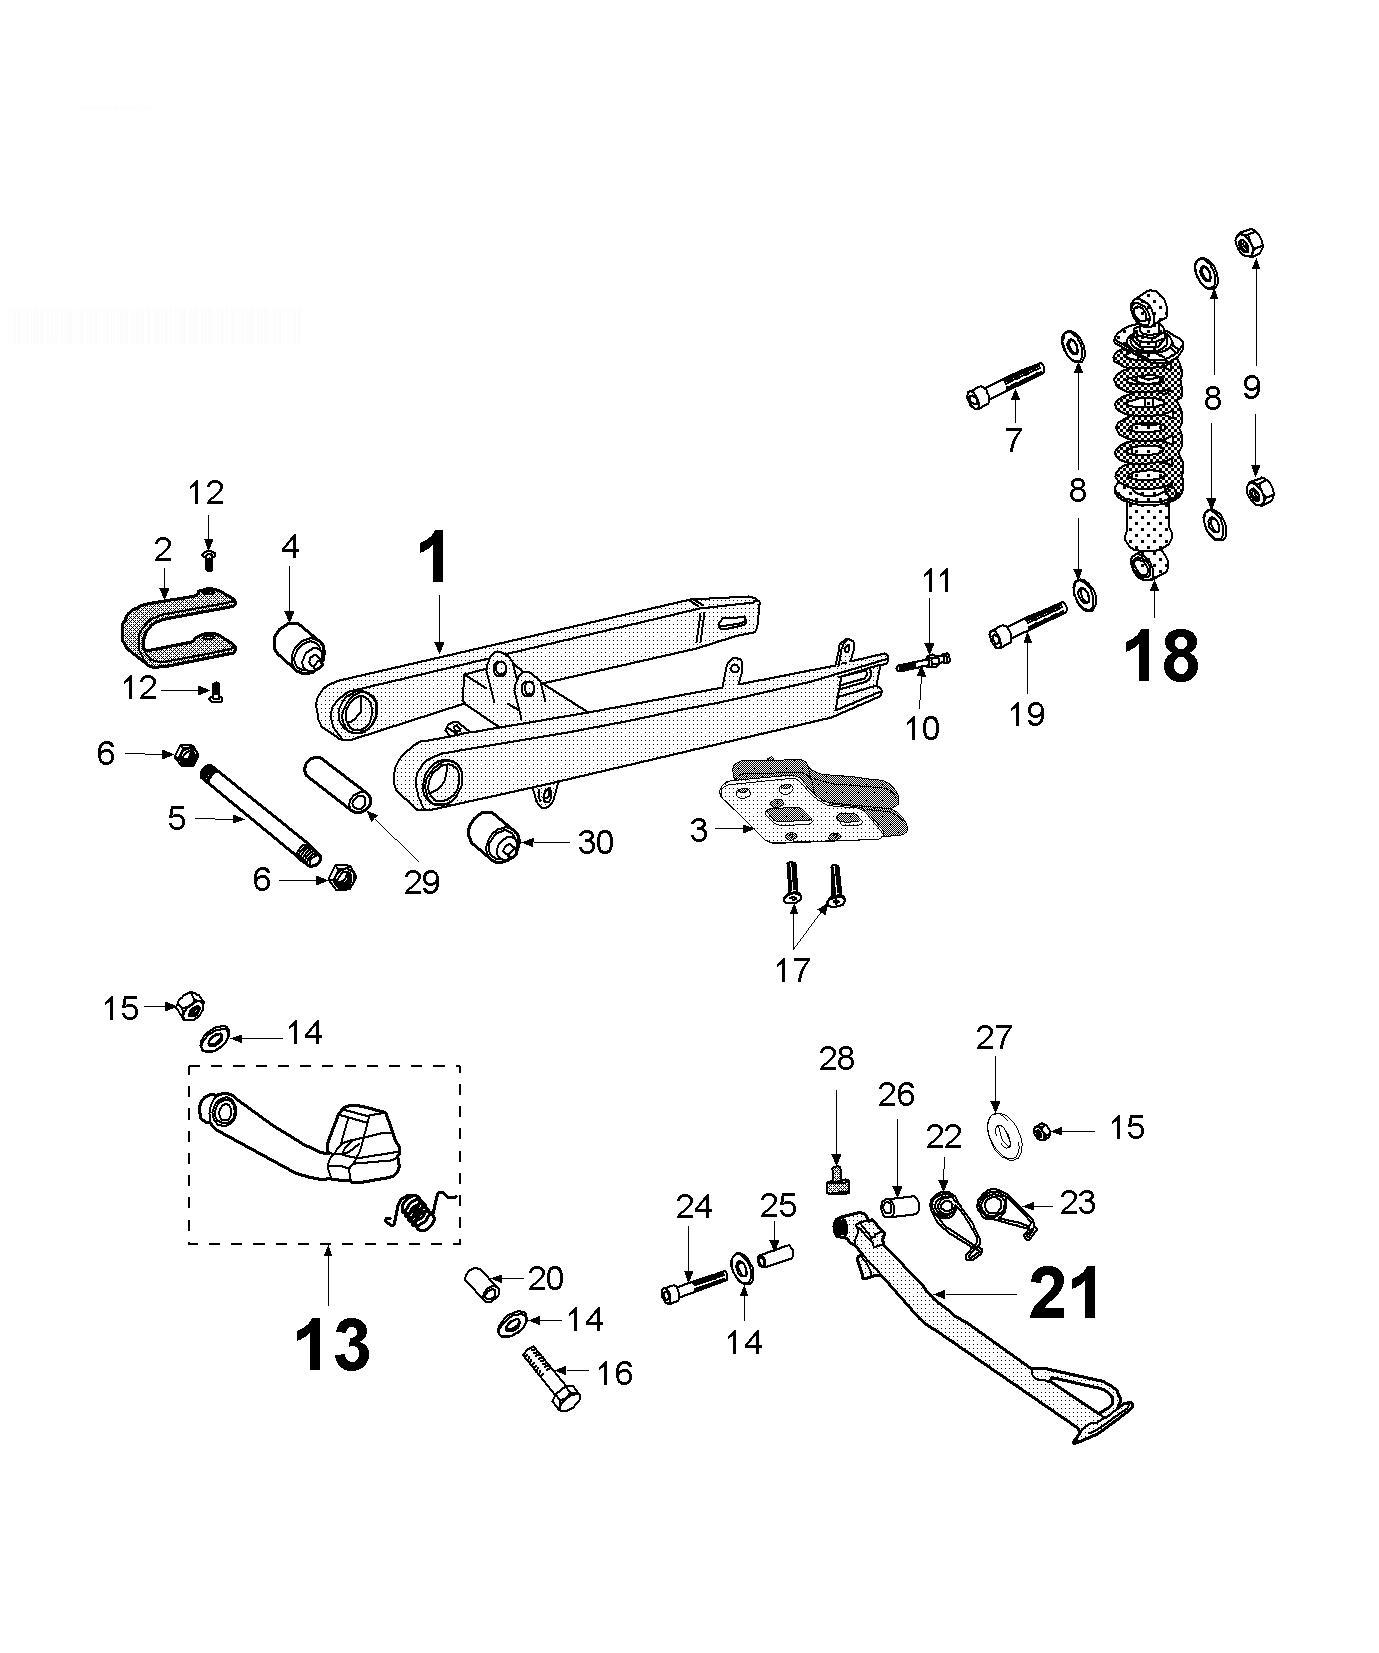 hight resolution of  peugeot xps 125 cti suspension stand on troubleshooting diagrams electronic circuit diagrams